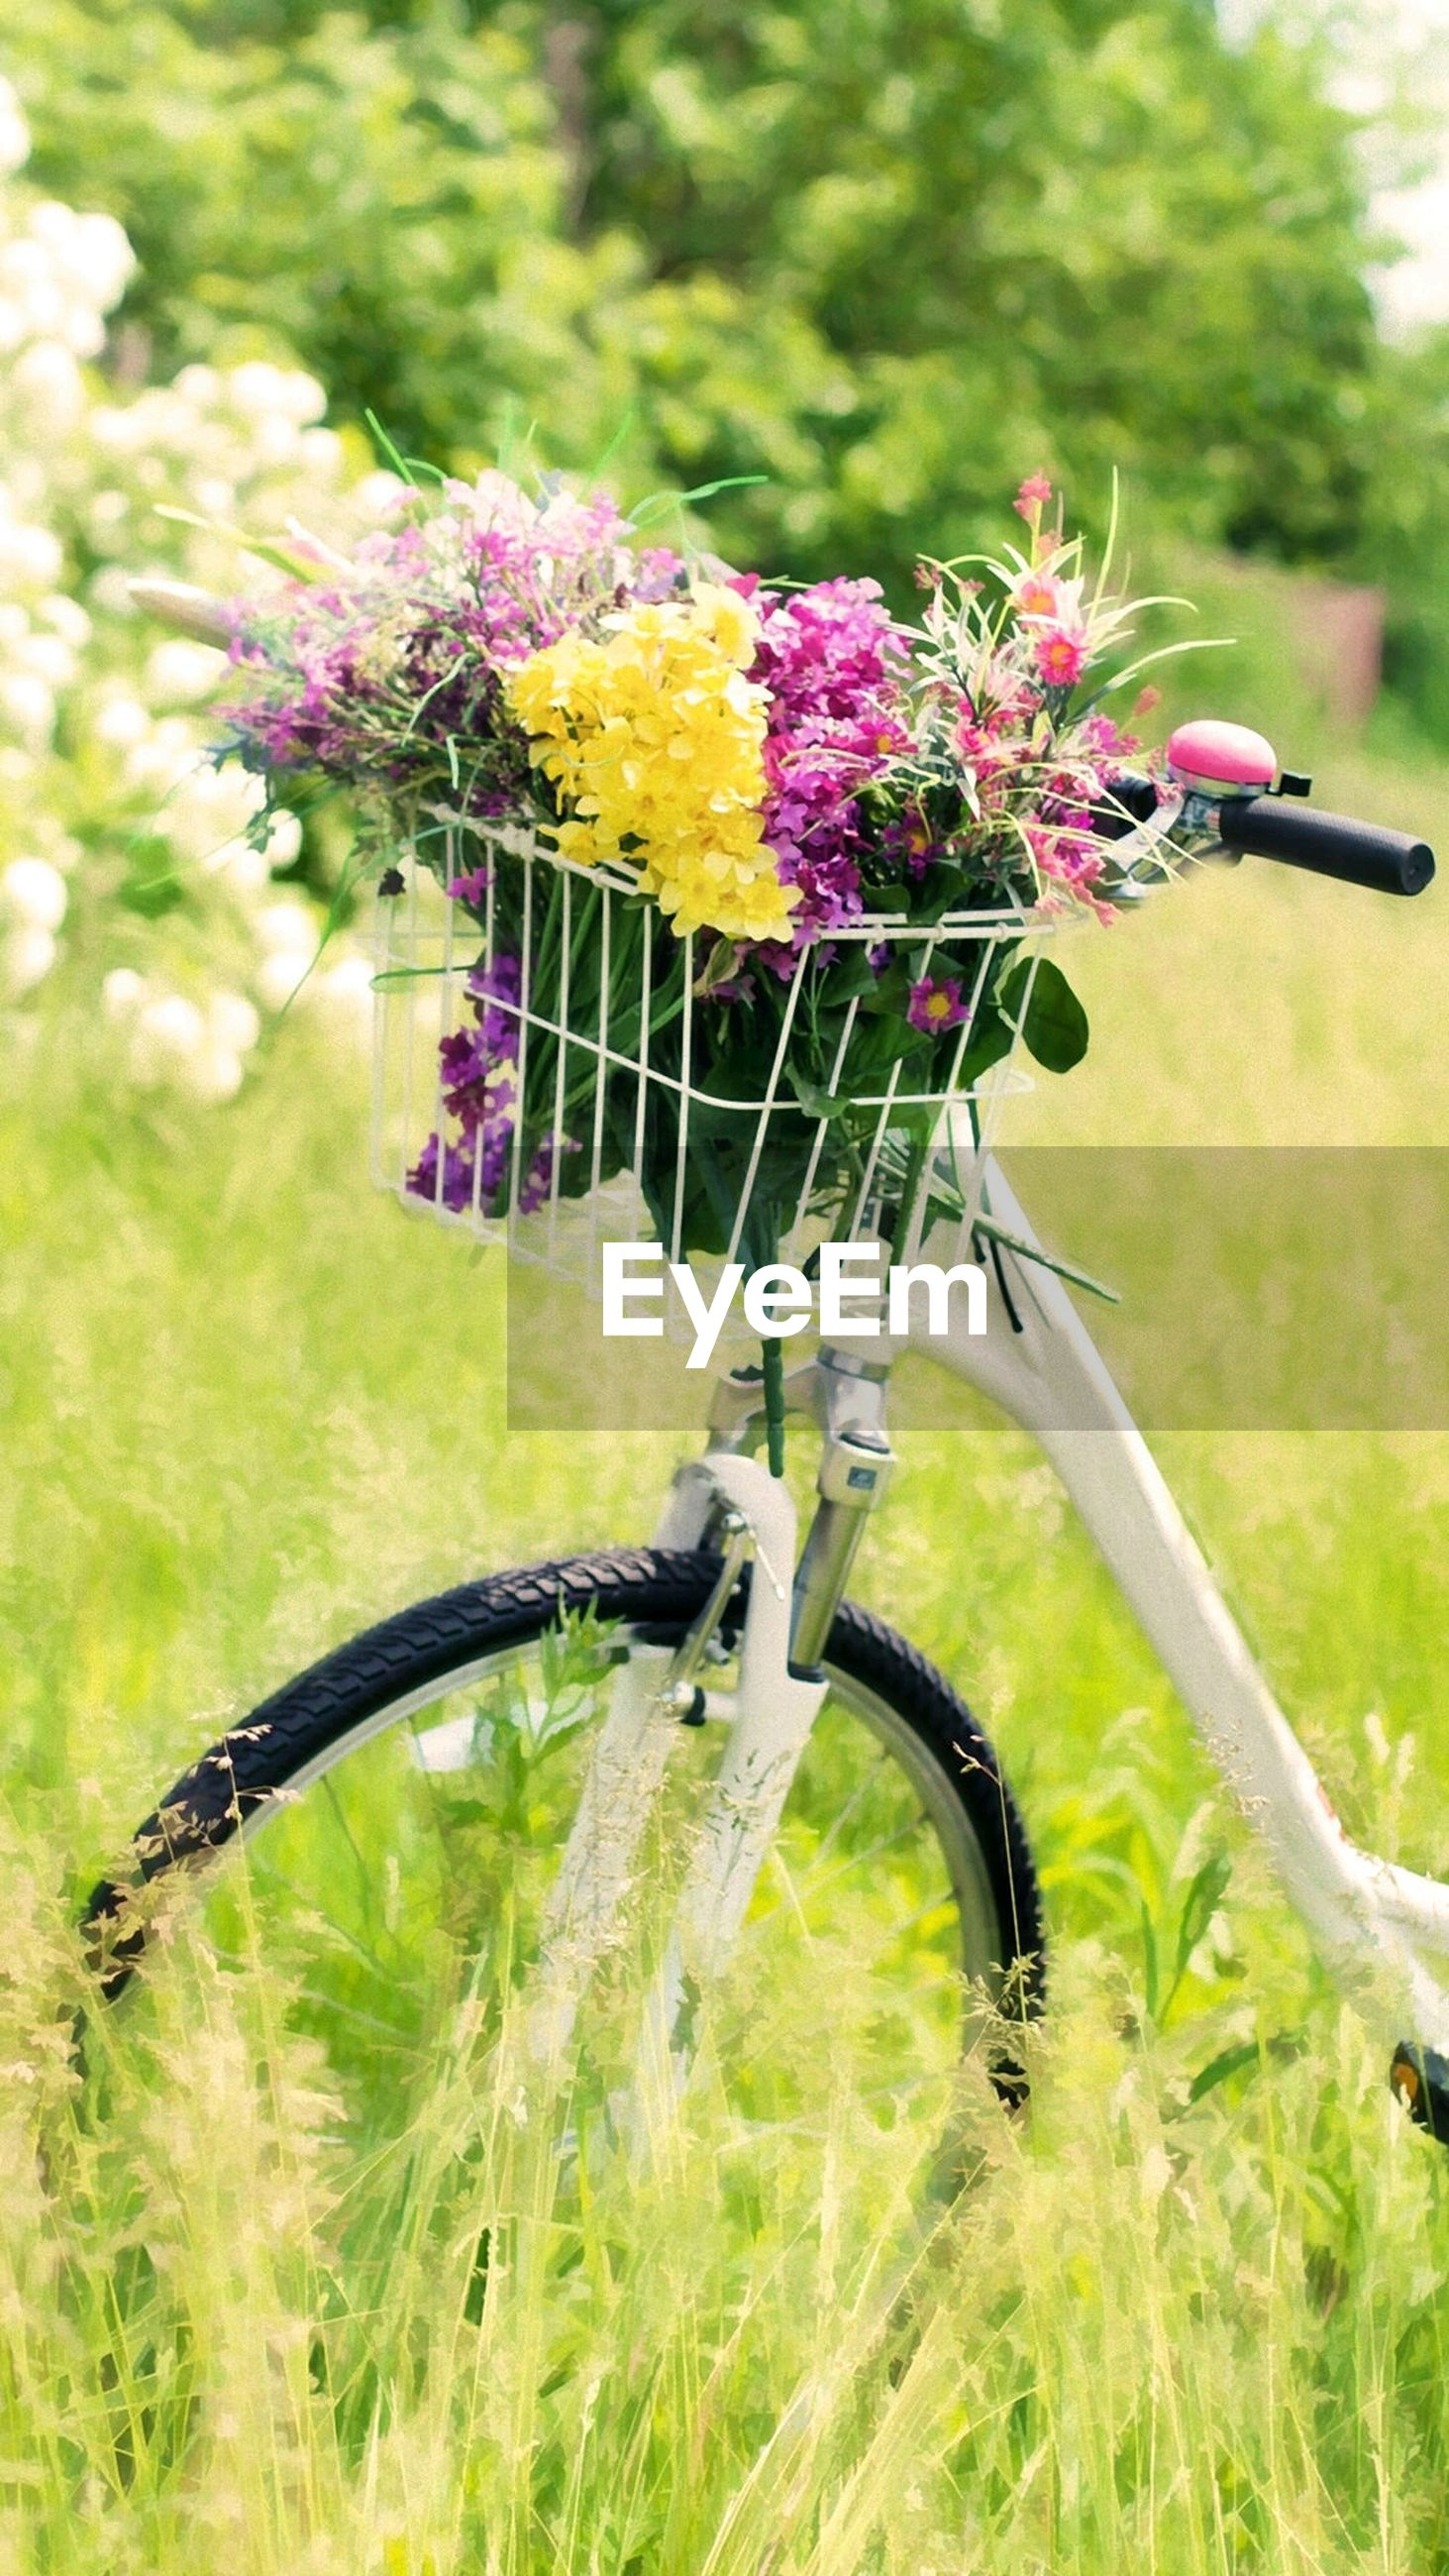 flower, bicycle, day, nature, no people, focus on foreground, outdoors, plant, transportation, land vehicle, fragility, close-up, grass, freshness, flower head, springtime, beauty in nature